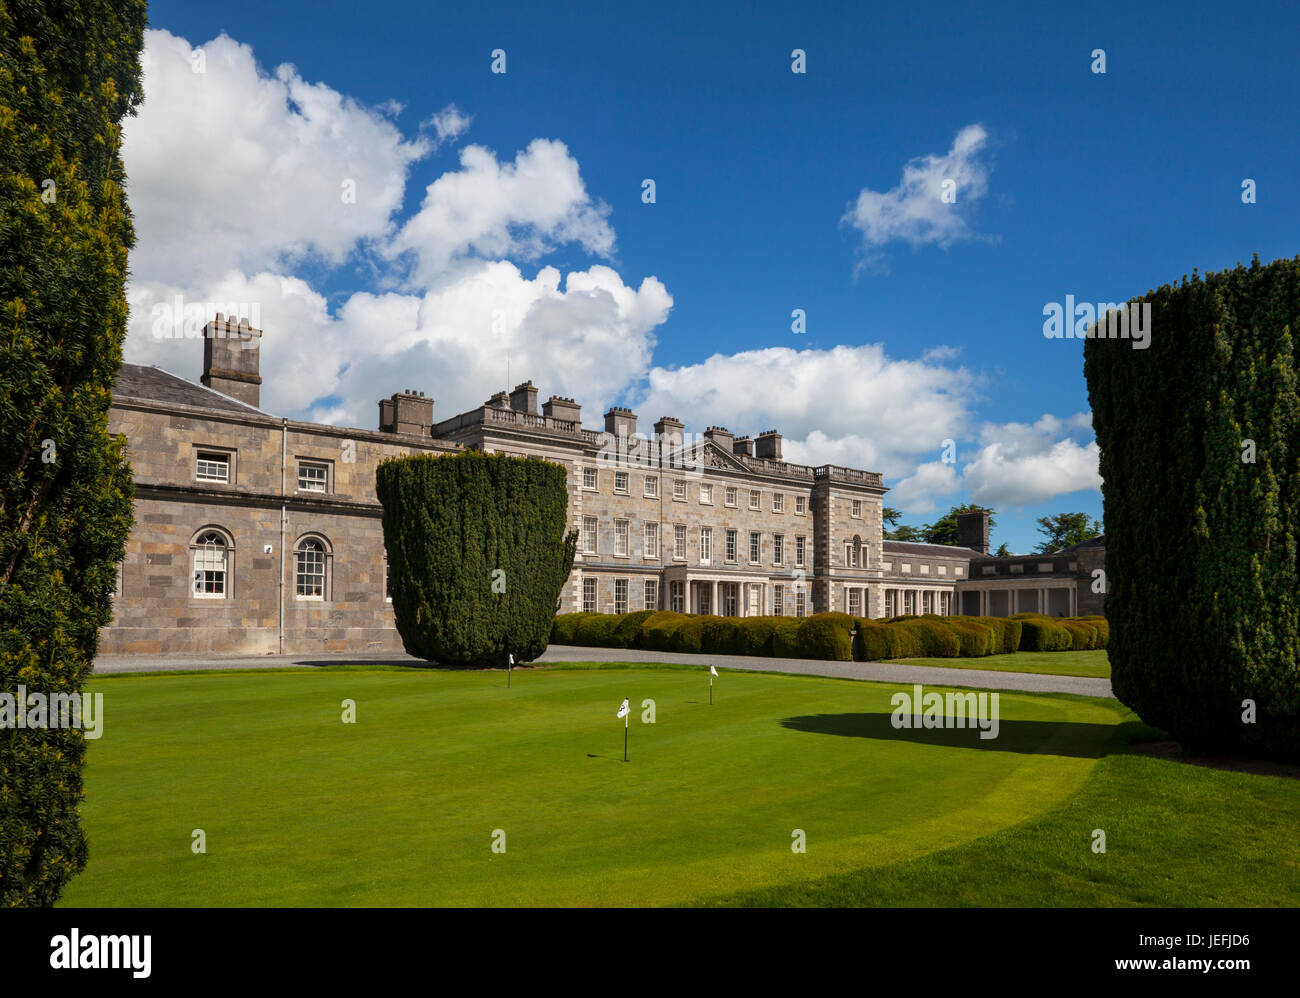 Built in 1739, Carton House was an estate and the great house designed by Richard Cassels was the ancestral seat - Stock Image